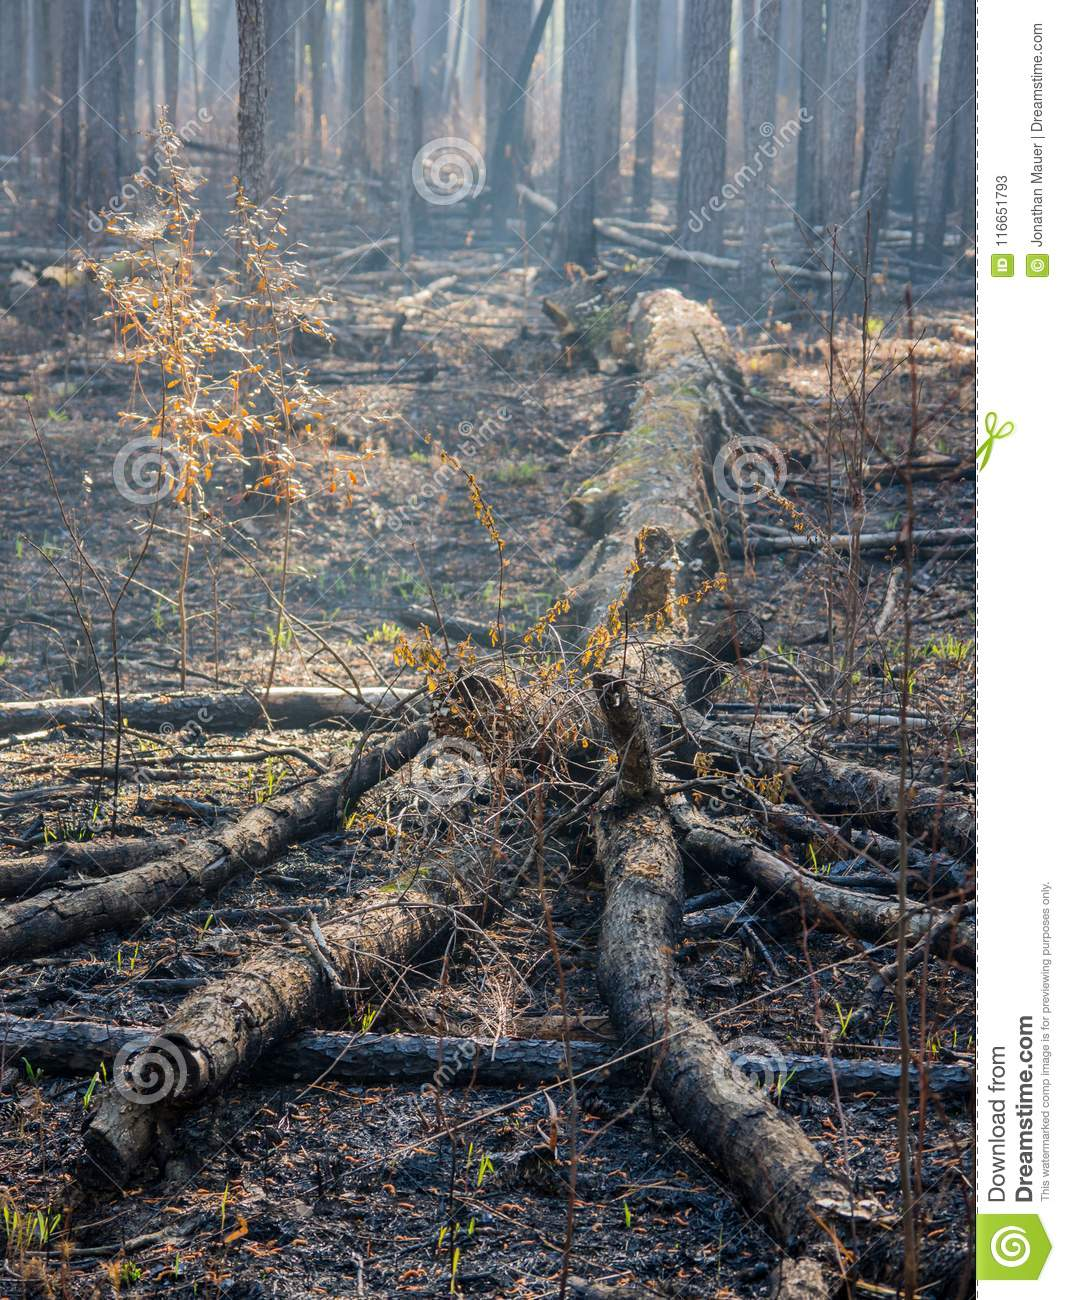 Downed Tree in a Charred Forest after Controlled Burn